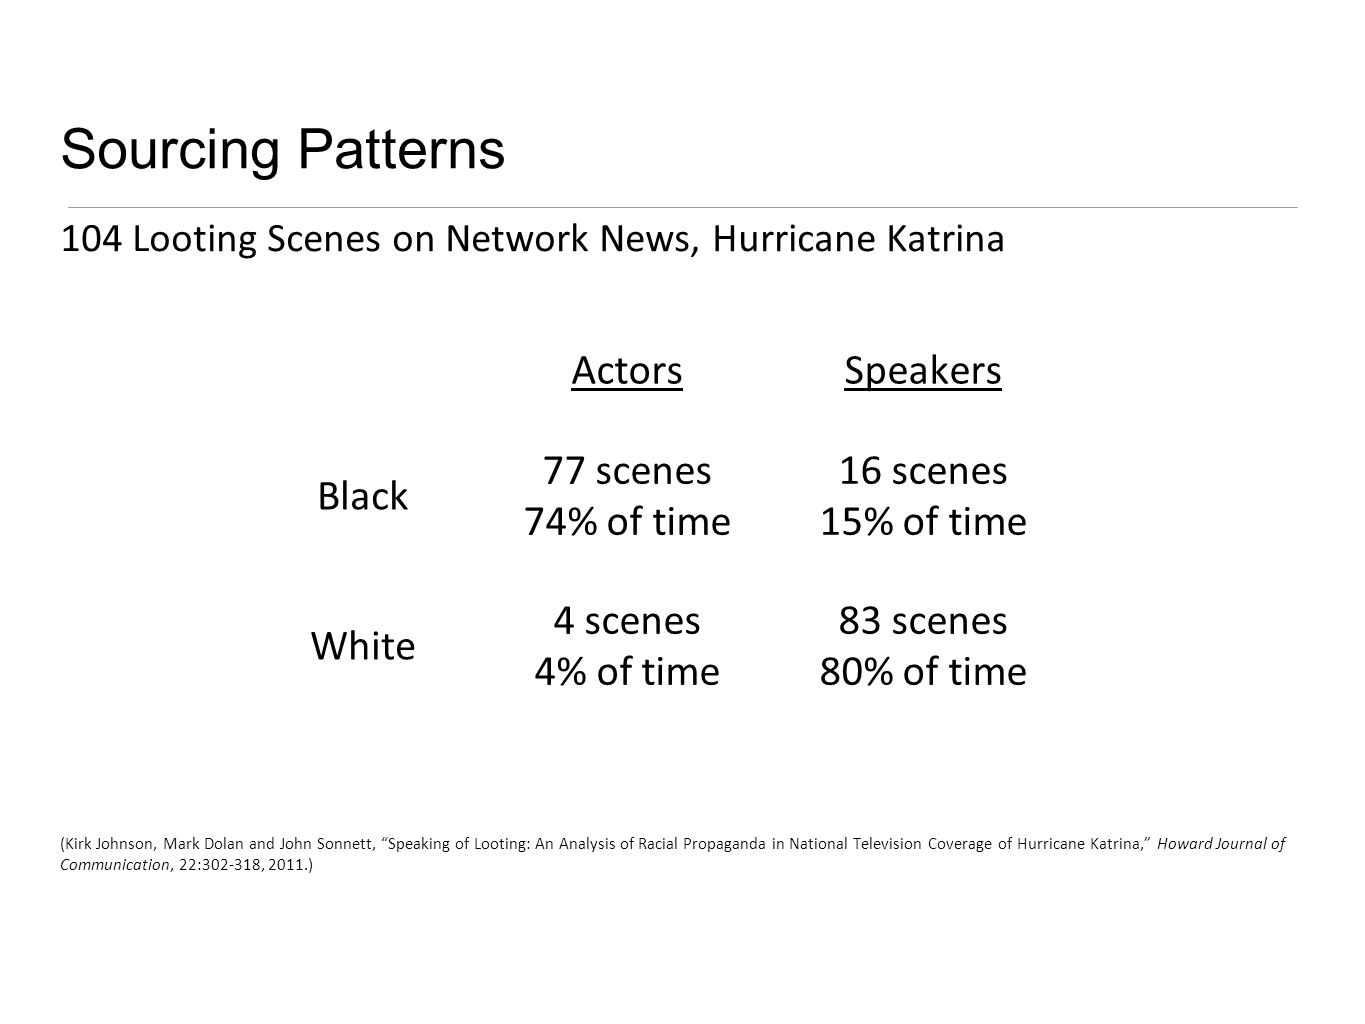 Sourcing Patterns 104 Looting Scenes on Network News, Hurricane Katrina (Kirk Johnson, Mark Dolan and John Sonnett, Speaking of Looting: An Analysis of Racial Propaganda in National Television Coverage of Hurricane Katrina, Howard Journal of Communication, 22:302-318, 2011.) ActorsSpeakers Black 77 scenes 74% of time 16 scenes 15% of time White 4 scenes 4% of time 83 scenes 80% of time